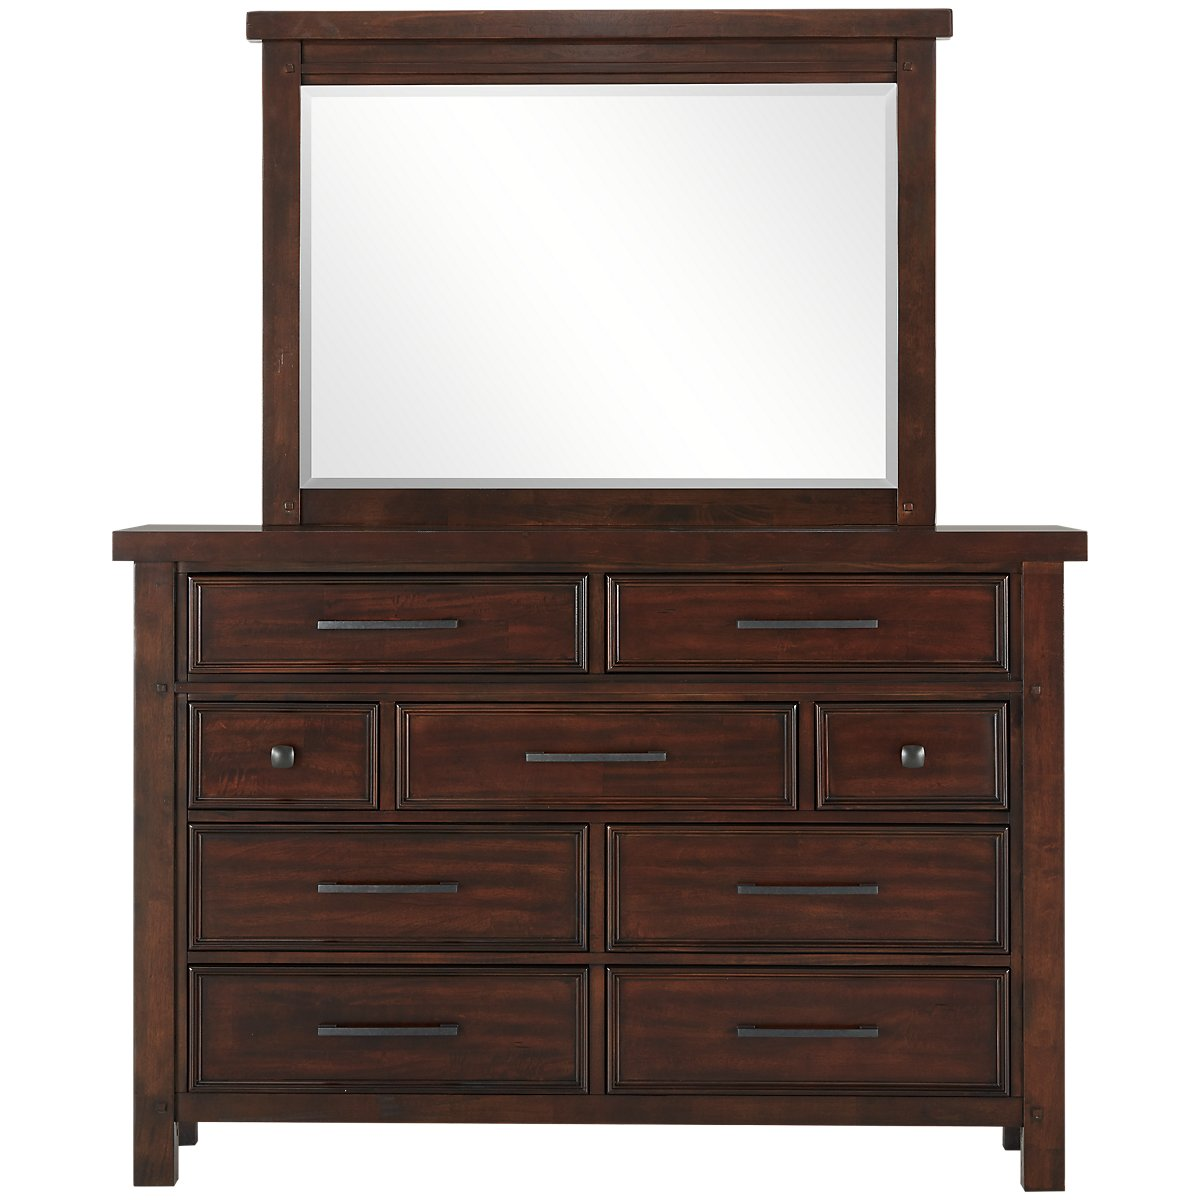 City Furniture Napa Dark Tone Dresser Mirror